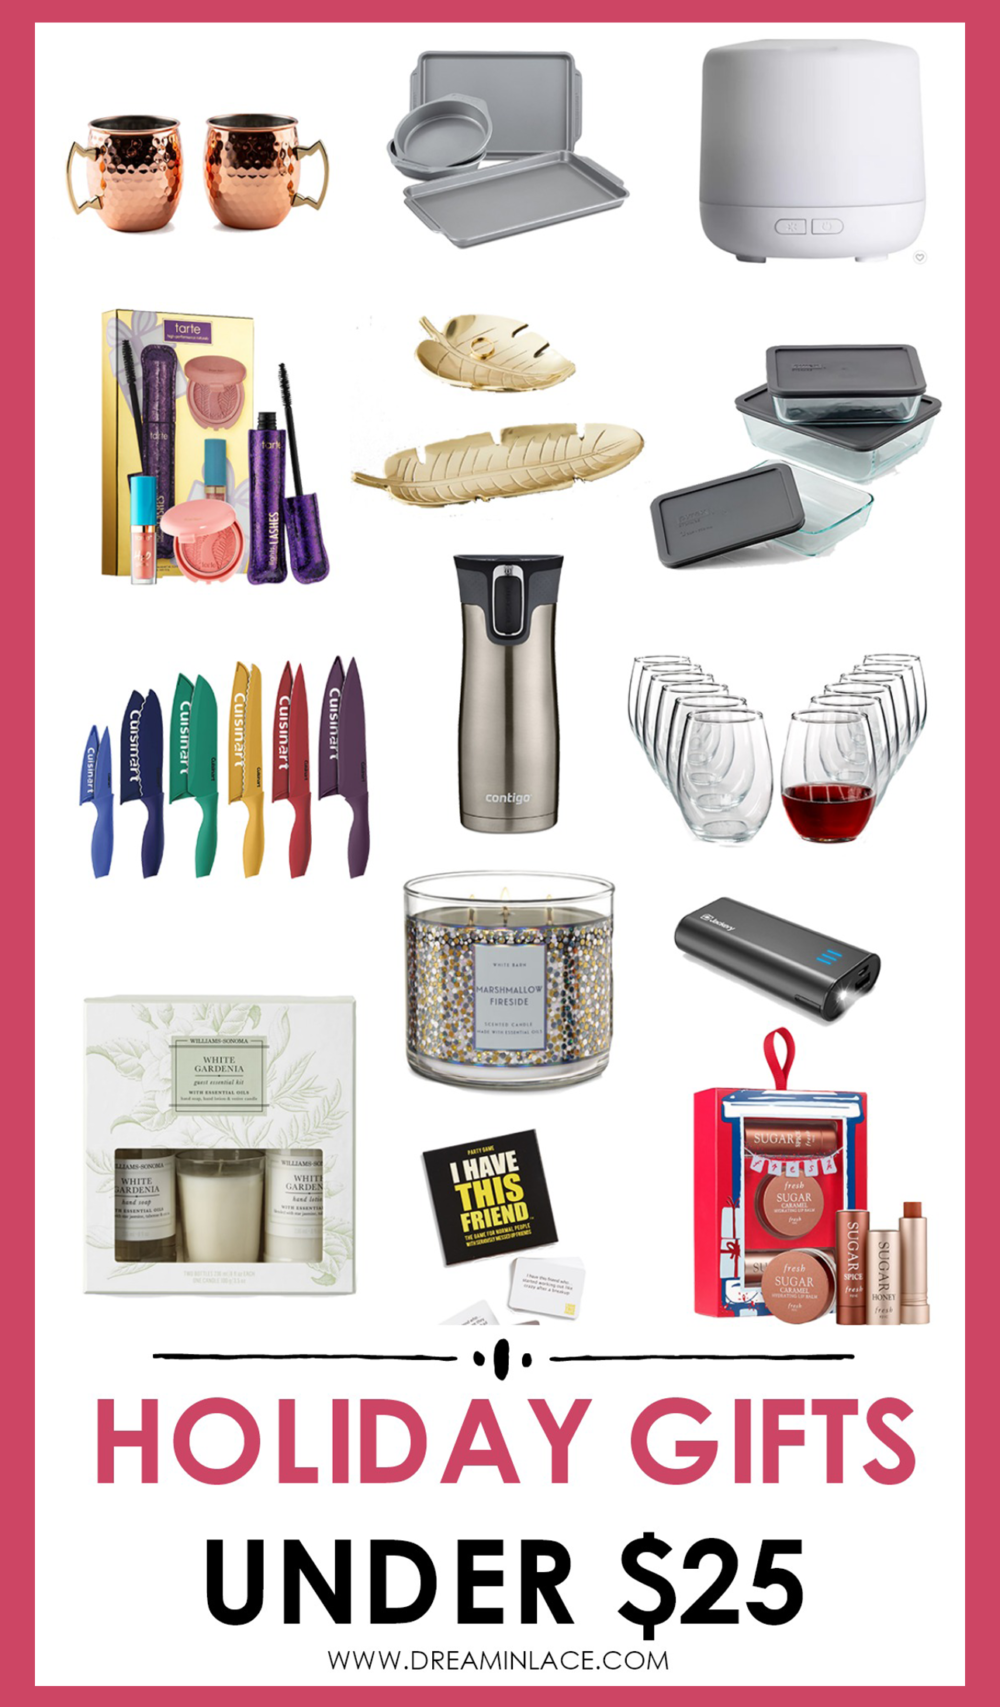 Holiday Gifts Under $25 I DreaminLace.com #GiftIdeas #GiftGuide #Blogmas